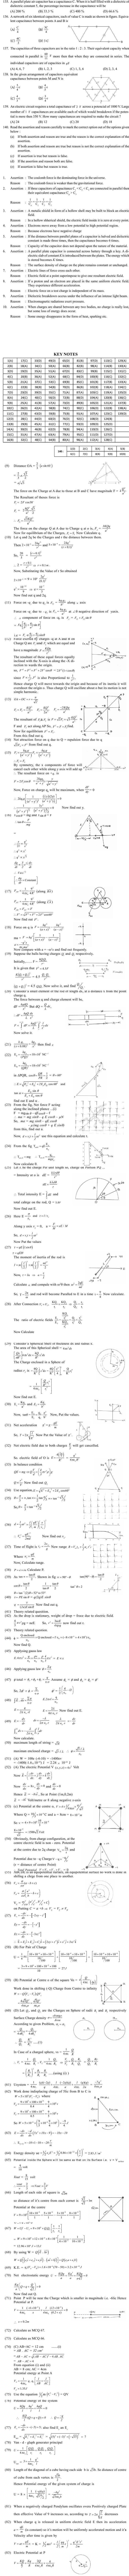 JEE and AIPMT Question Bank Physics - Electrostatics